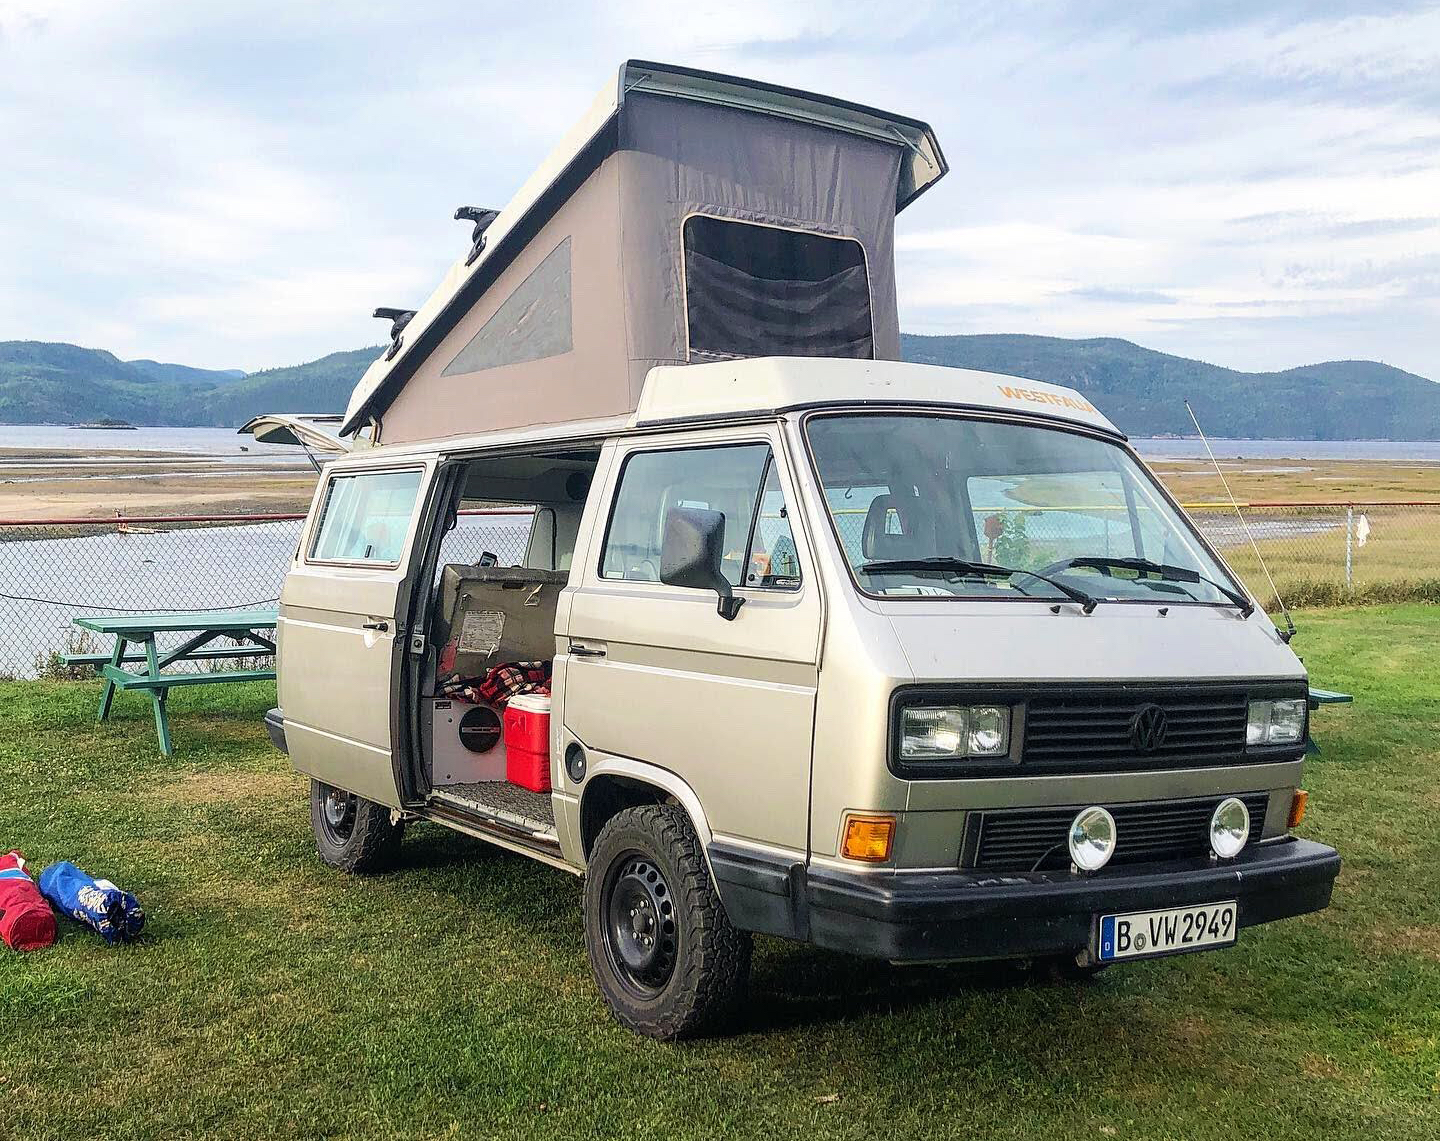 A photo of a 1990 Volkswagen Vanagon Westfalia with the pop-top tent extended. Here's a guide to buying your own camper van.